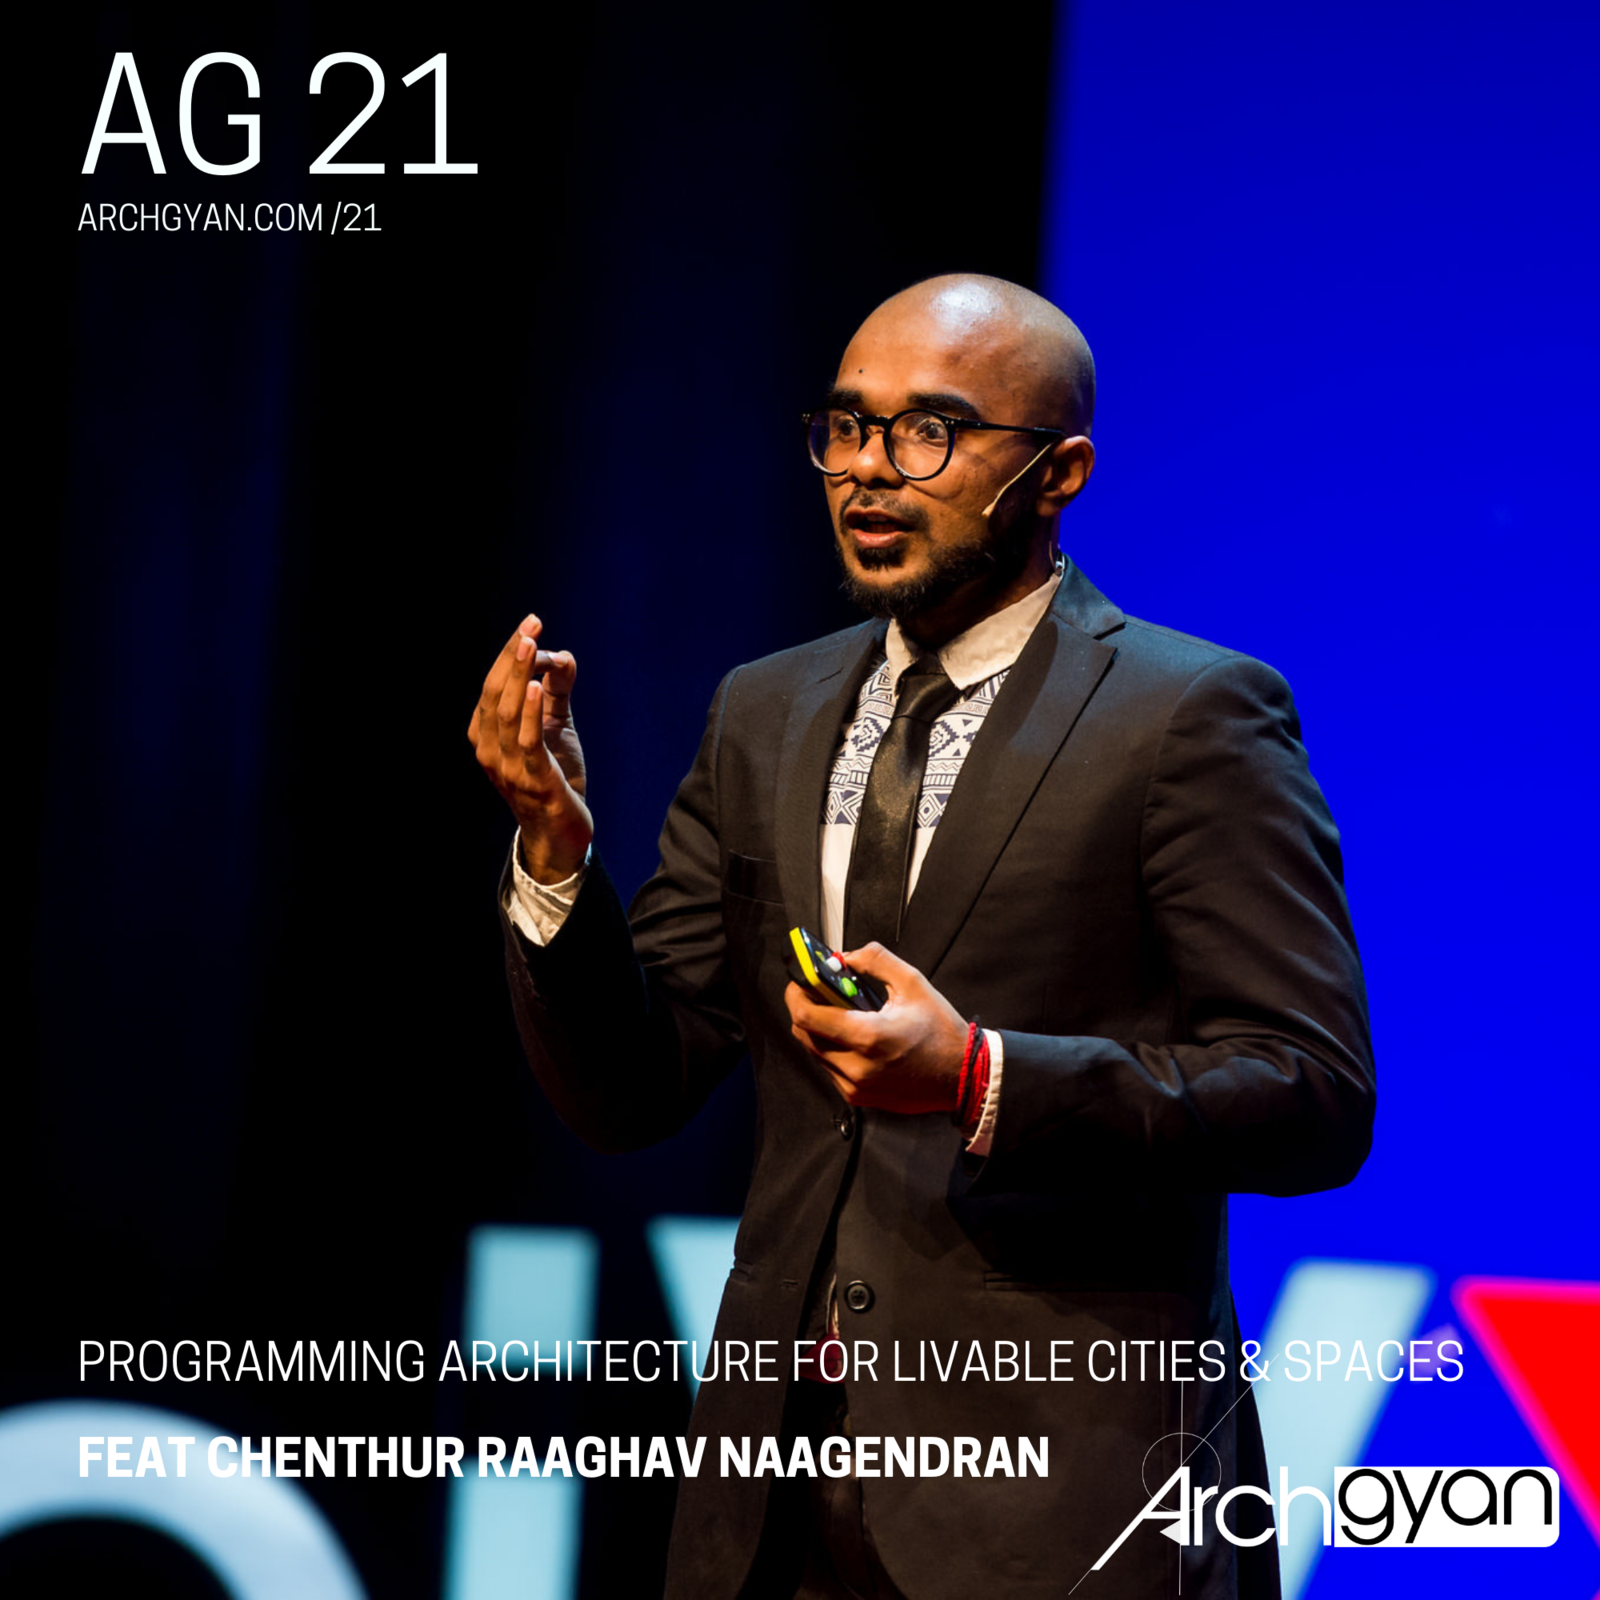 AG 21 Programming Architecture for Livable Cities & Spaces with Chenthur Raaghav Naagendran